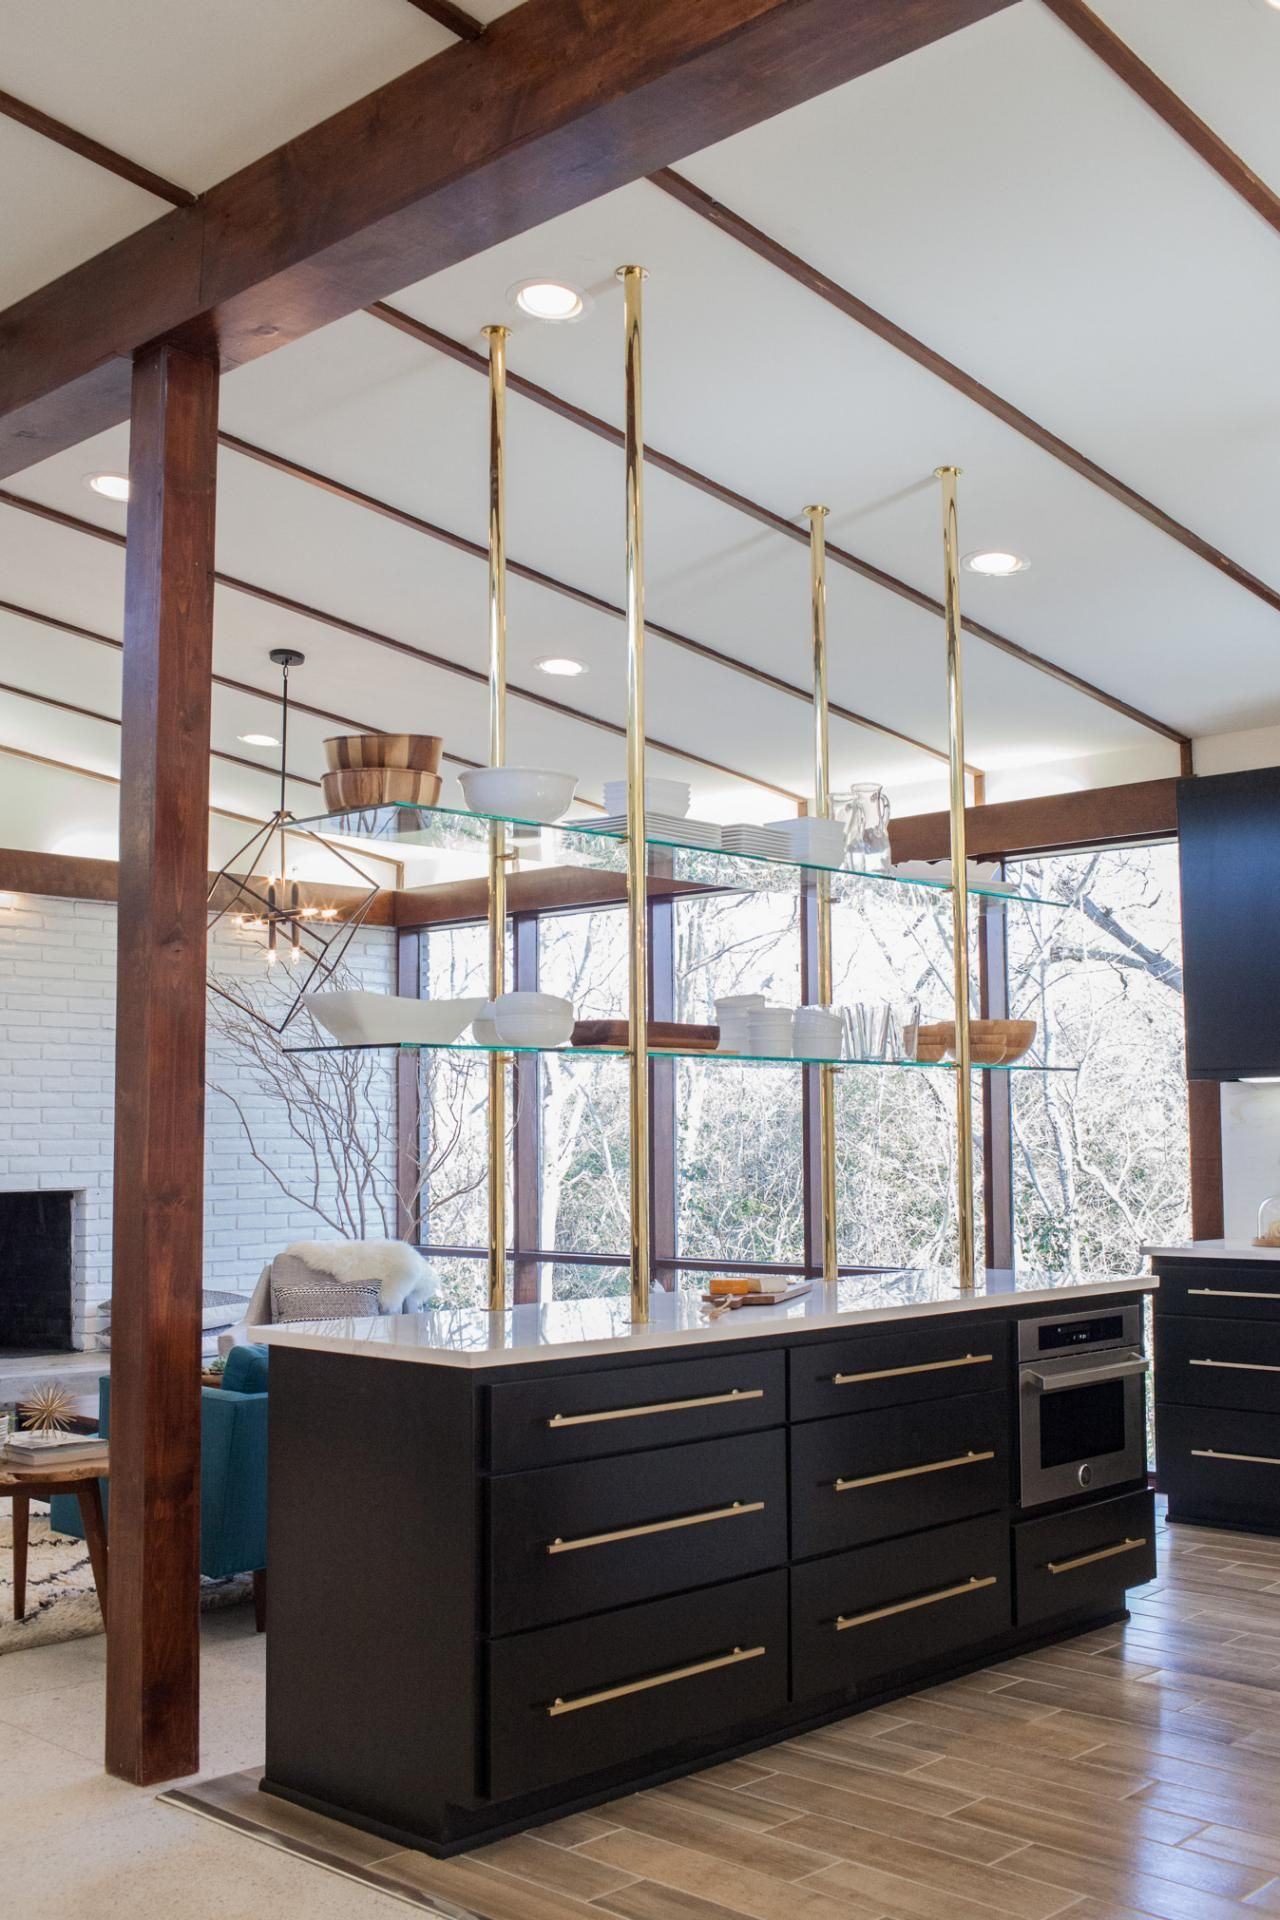 A Fixer Upper Take on Midcentury Modern | Midcentury modern, Shelves ...